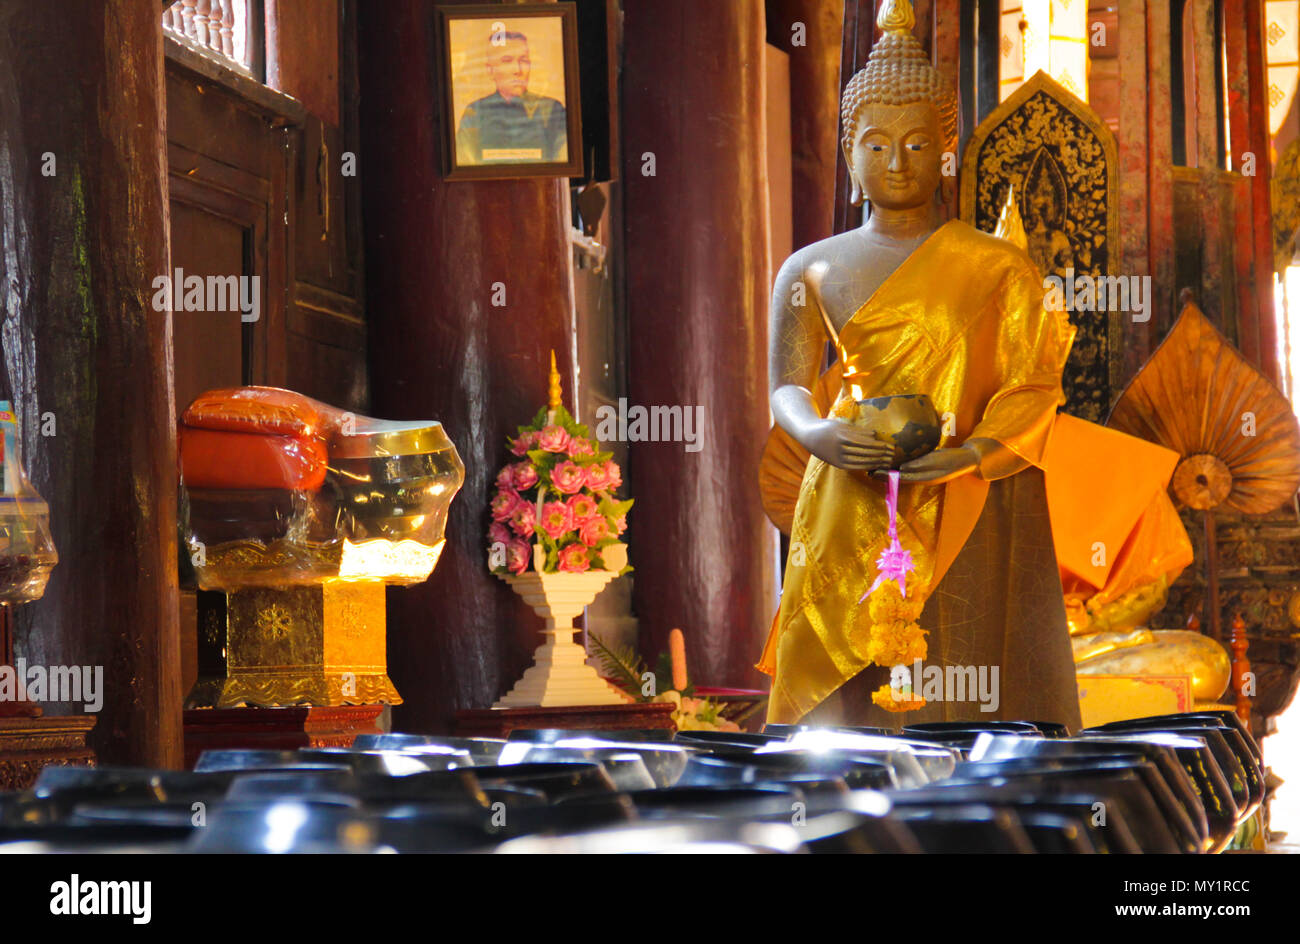 Thailand Buddha Statue with Copper Gong - Stock Image